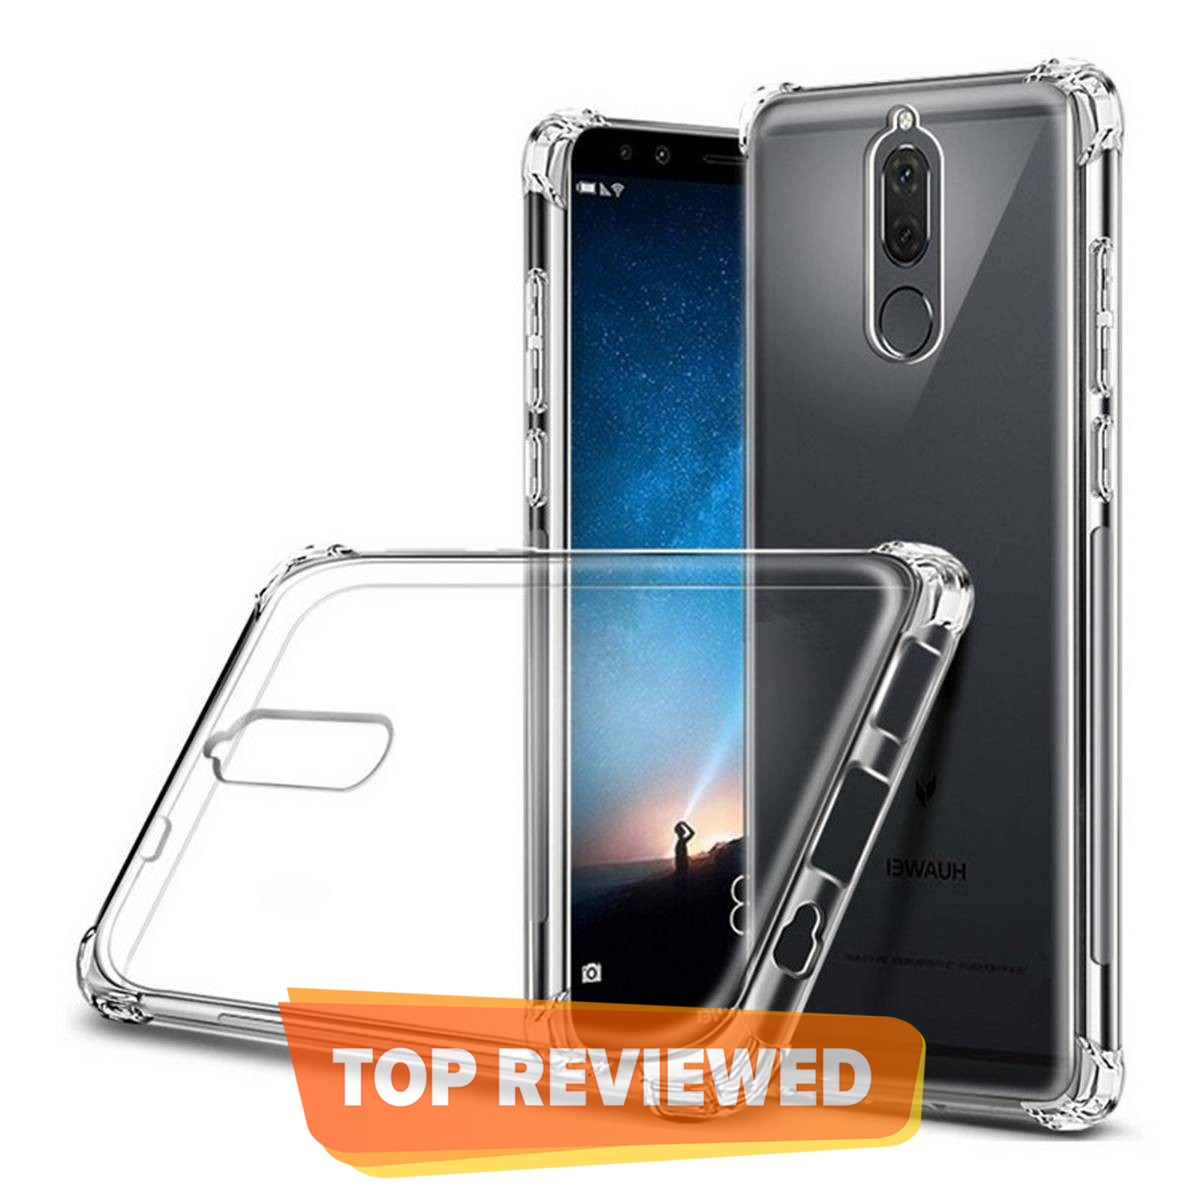 Huawei Mate 10 Lite Auto Focus Shock Proof Leather Pattern Armor Soft Back Cover